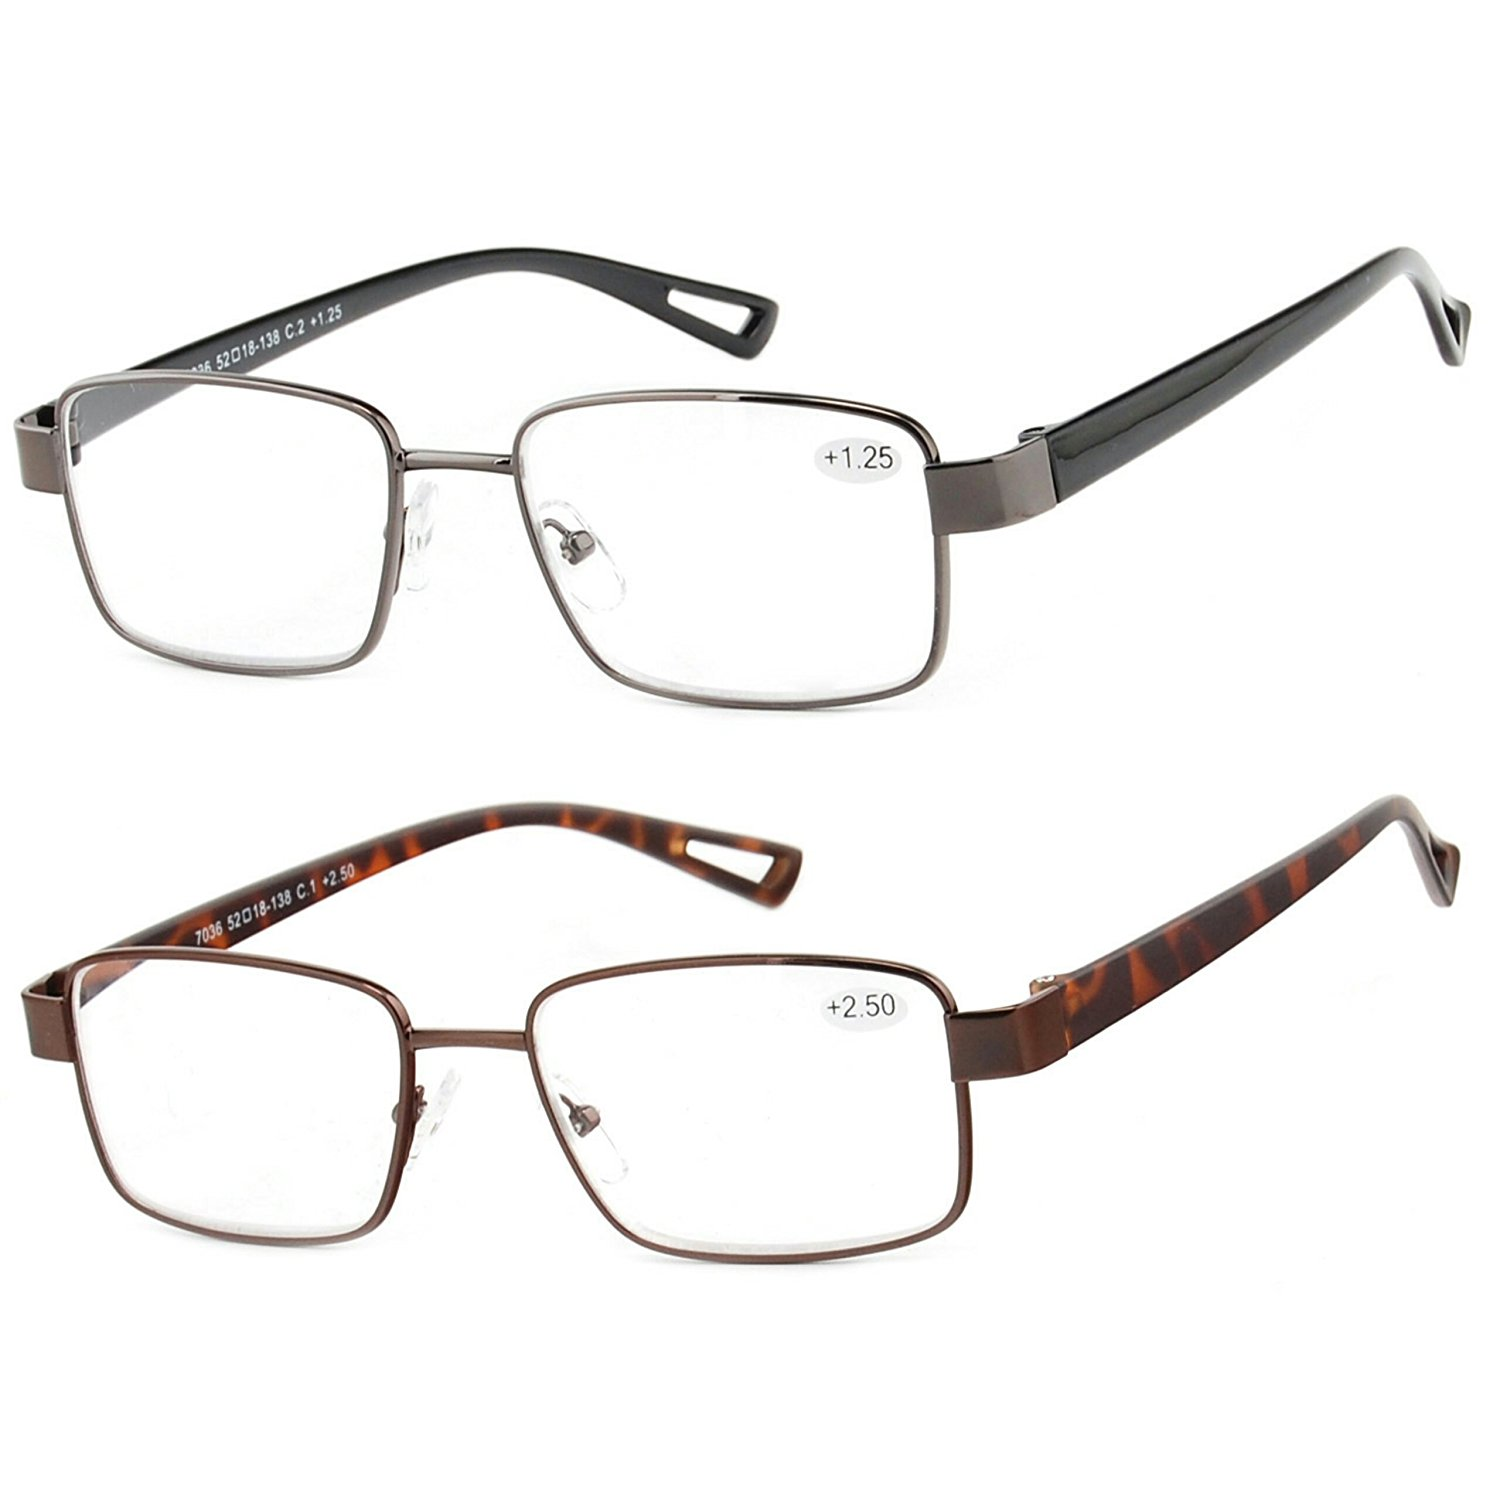 8d2a98ce25a Get Quotations · Reading Glasses Set of 2 Metal Rim Readers Fashion TR90 Lightweight  Comfort Frames for Men and